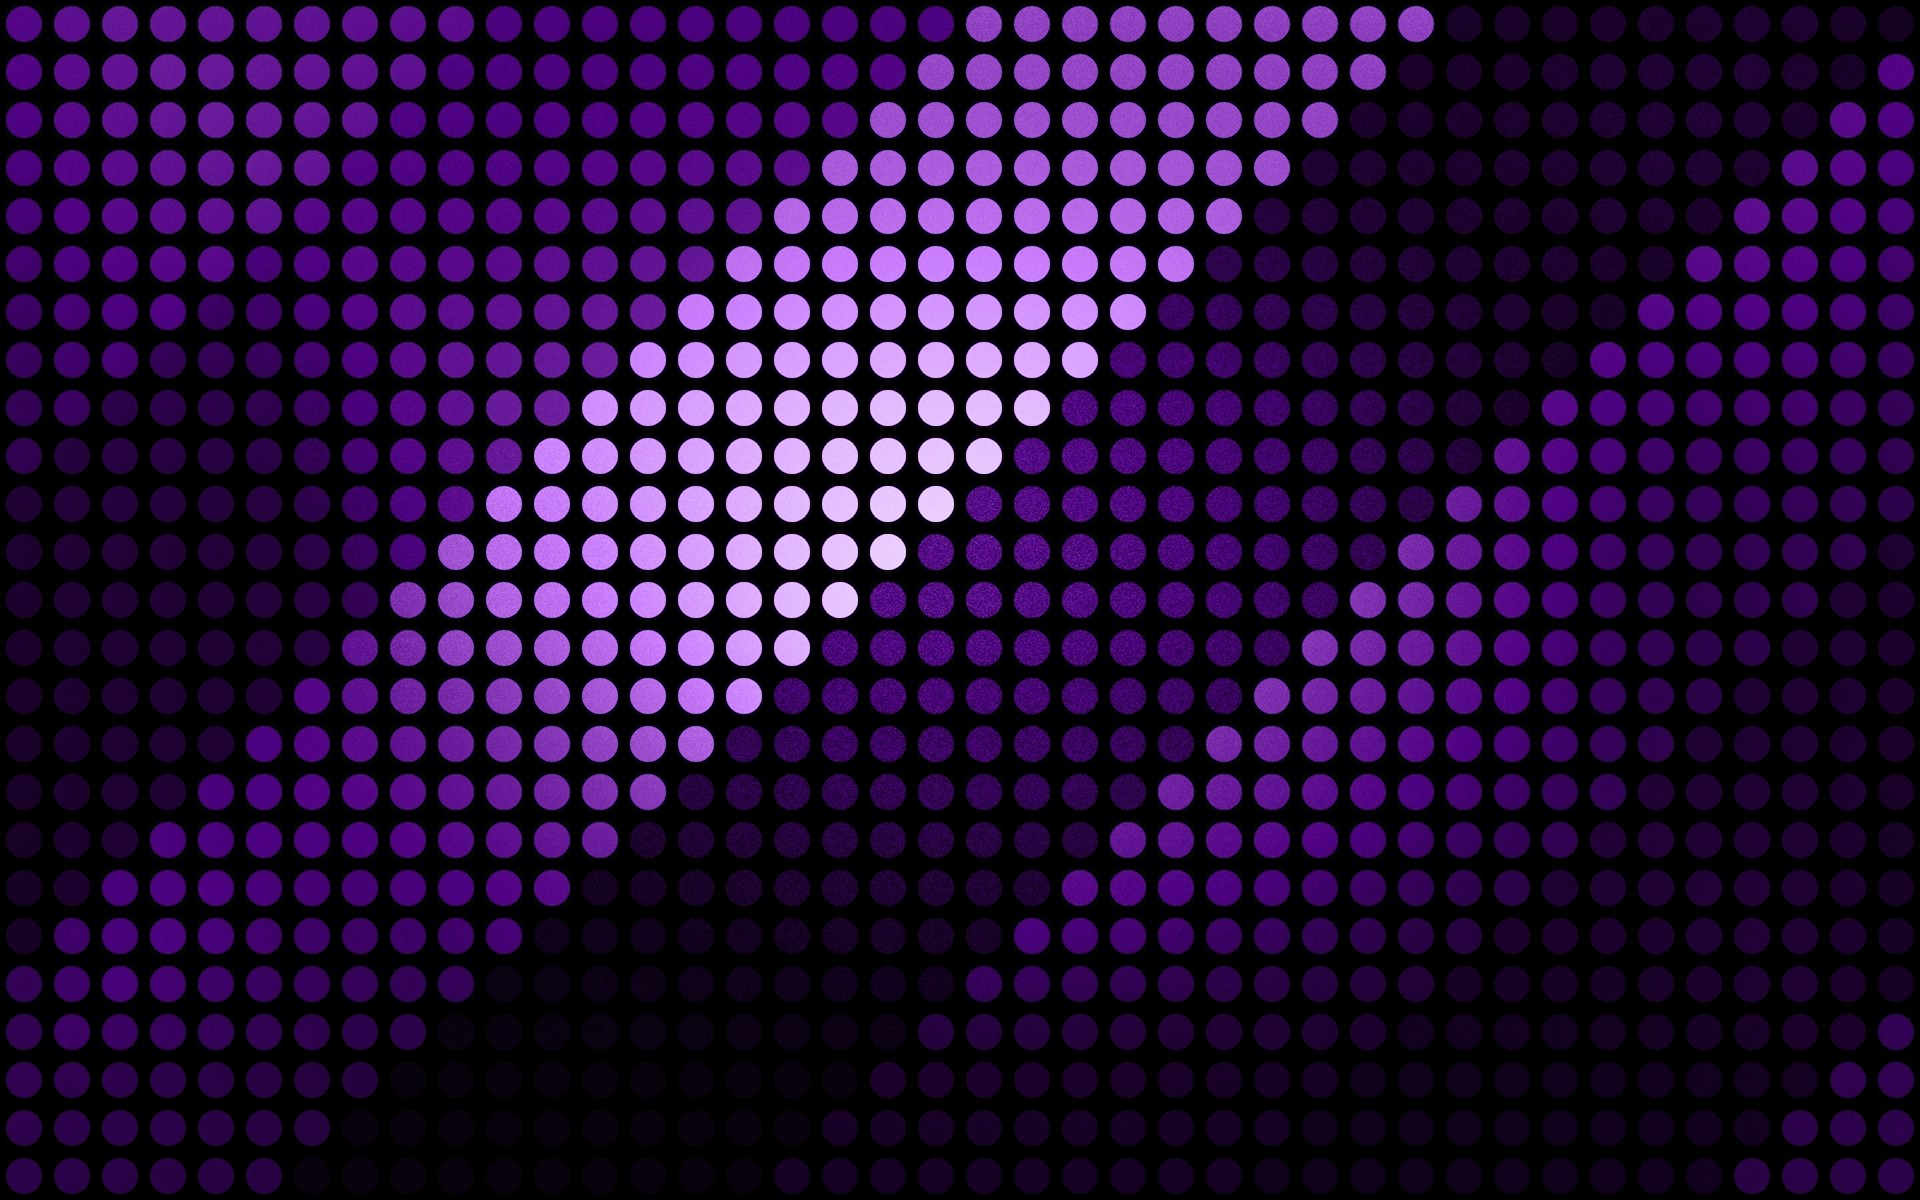 Artistic Purple Dots Wallpaper